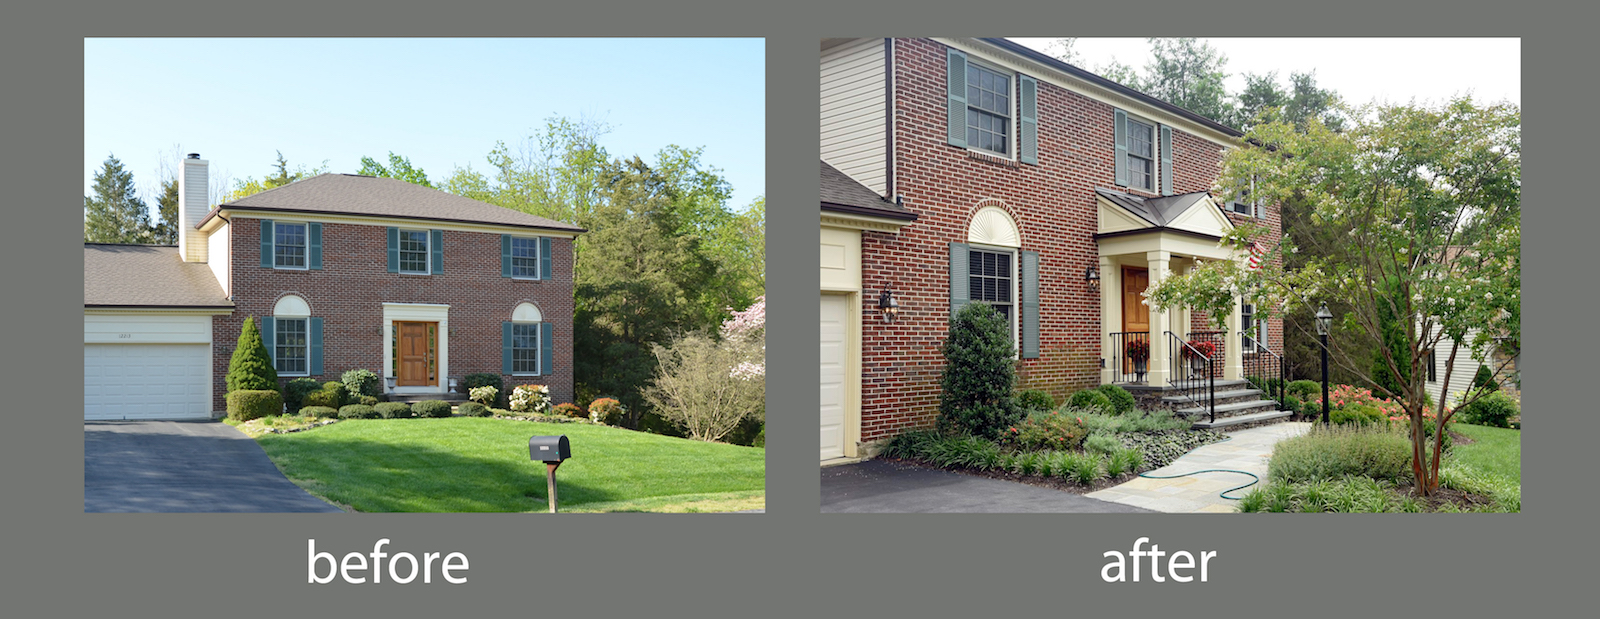 Before After Front Yard Landscape Design Herndon Va